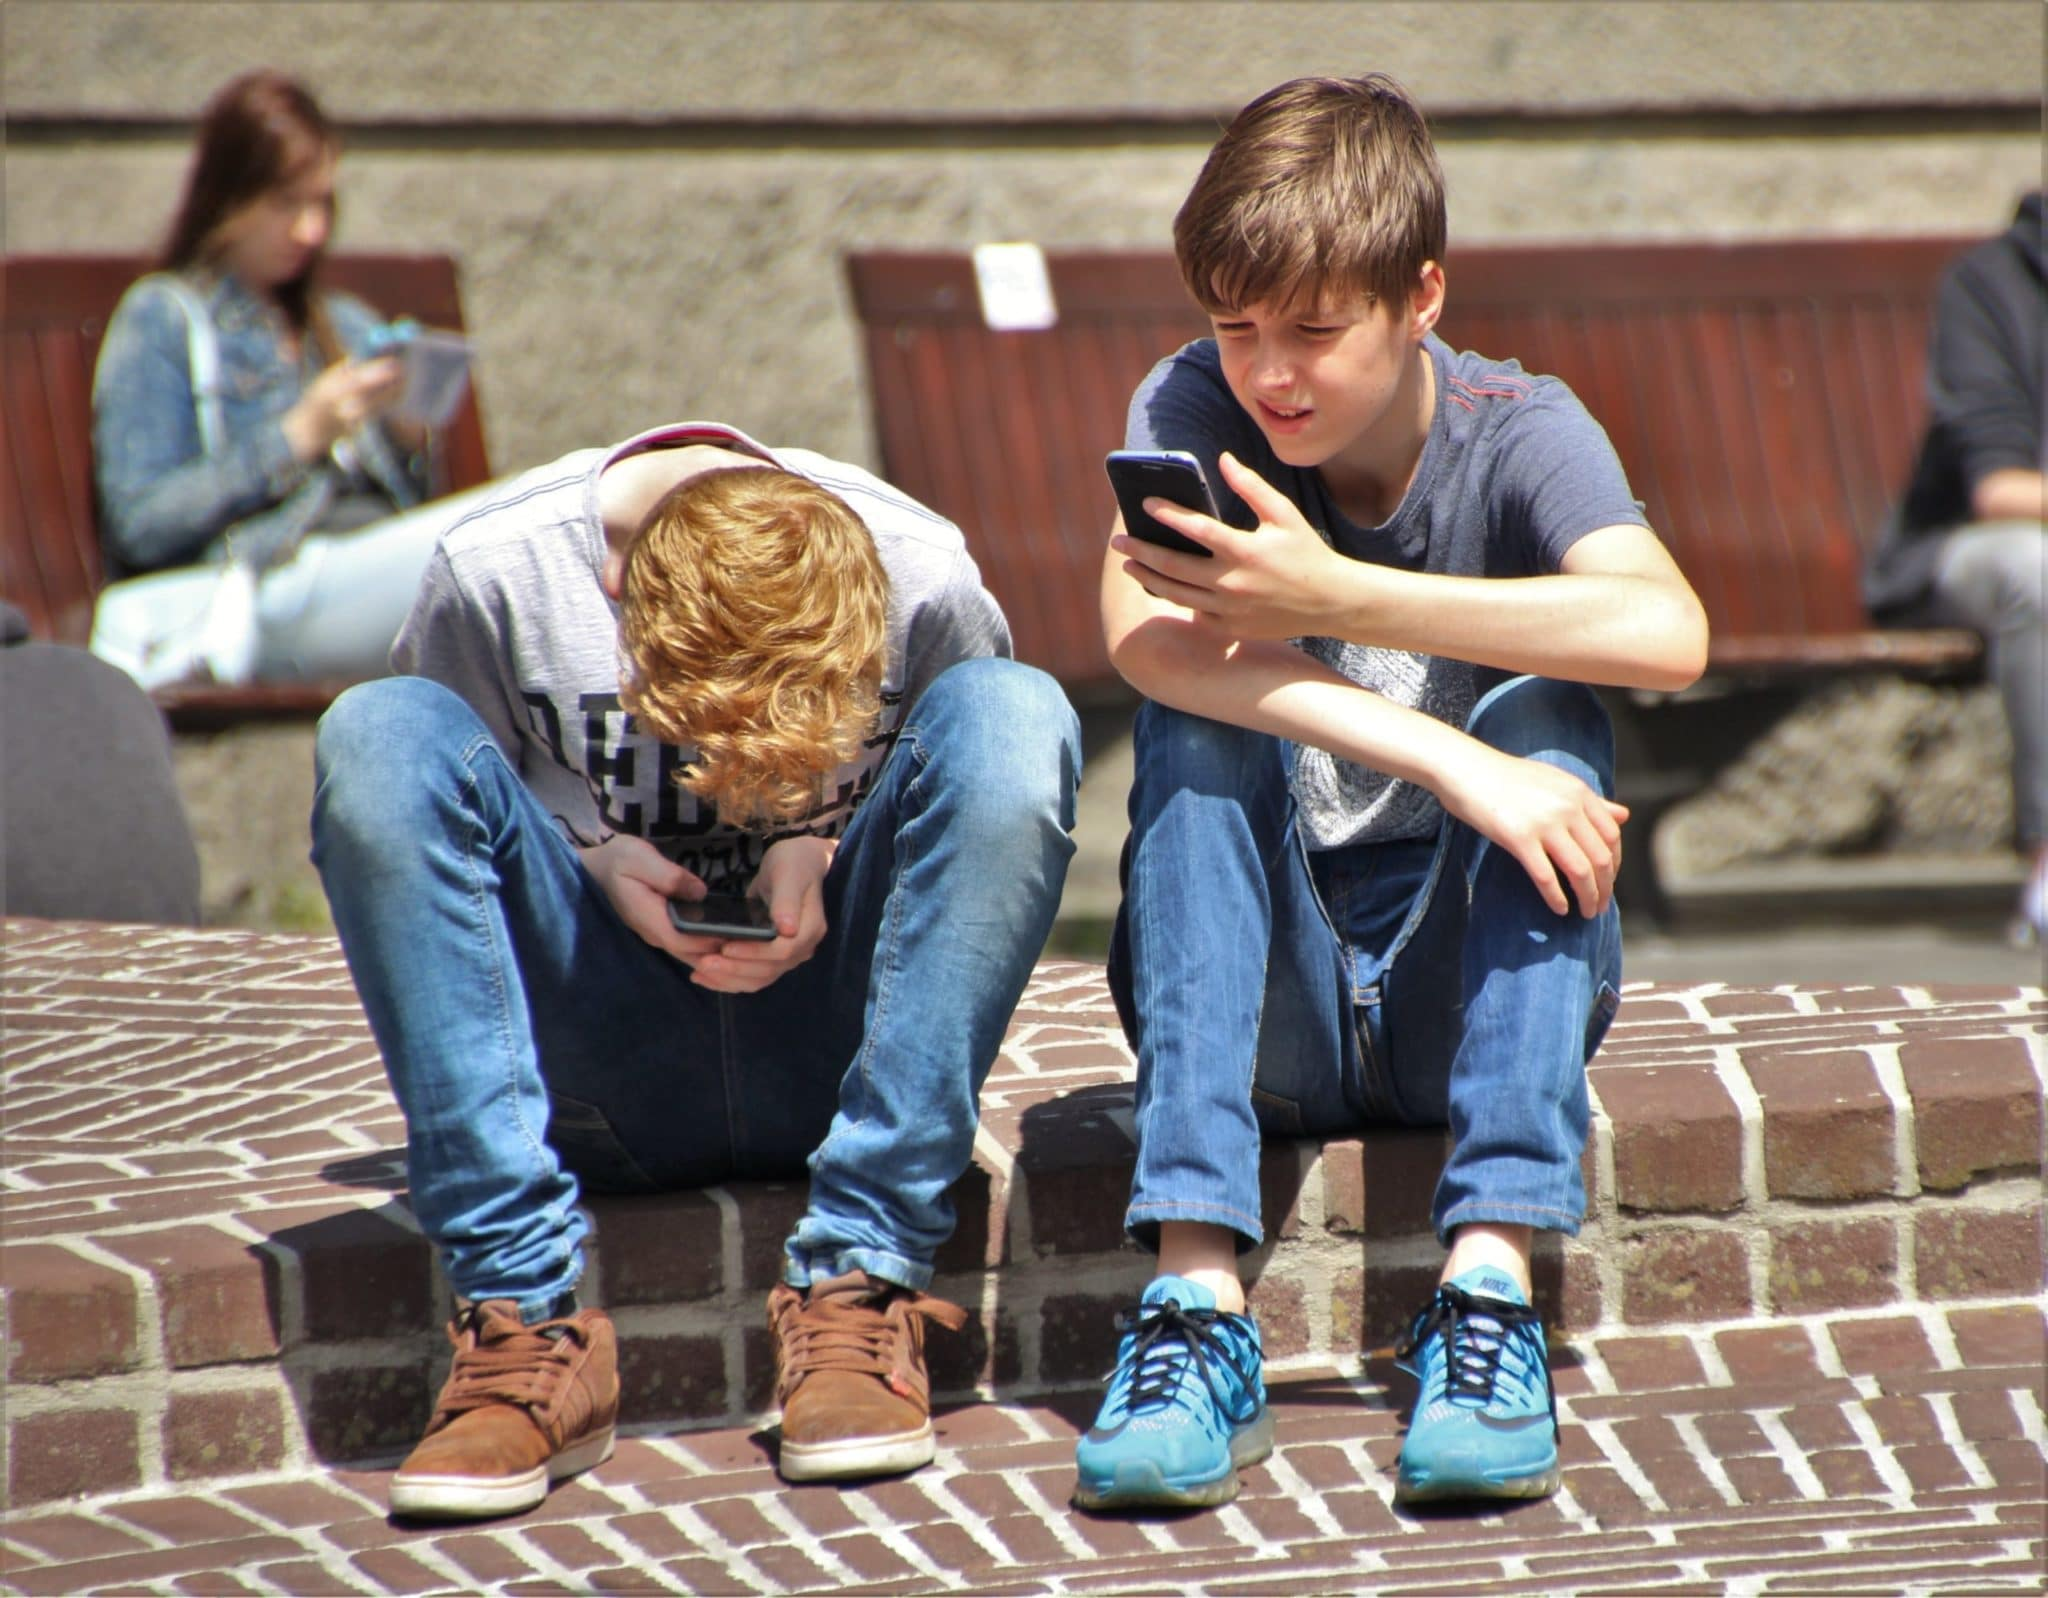 Effects of Too Much Screen Time on Children